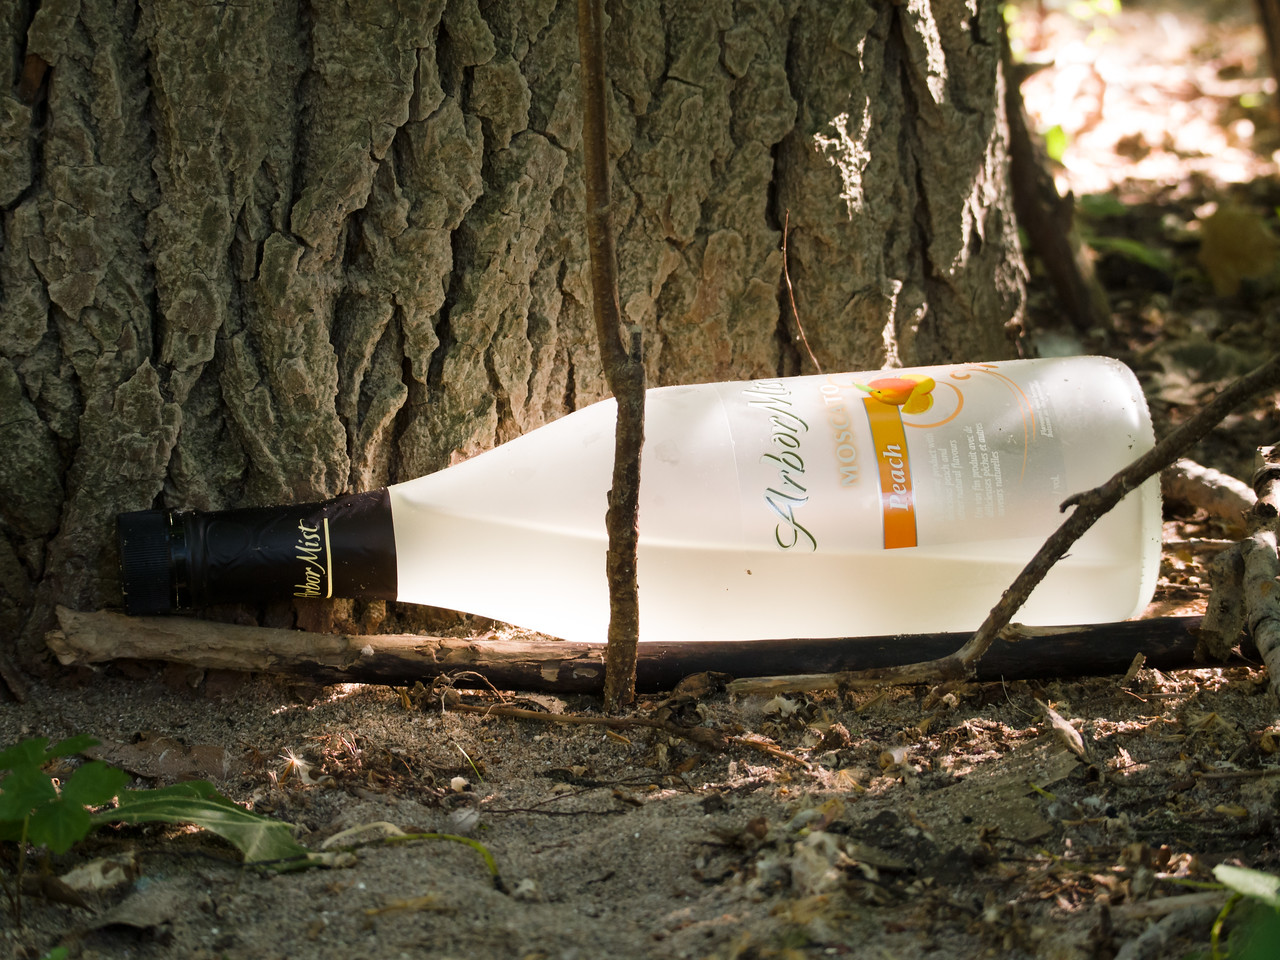 Bottle in a forest